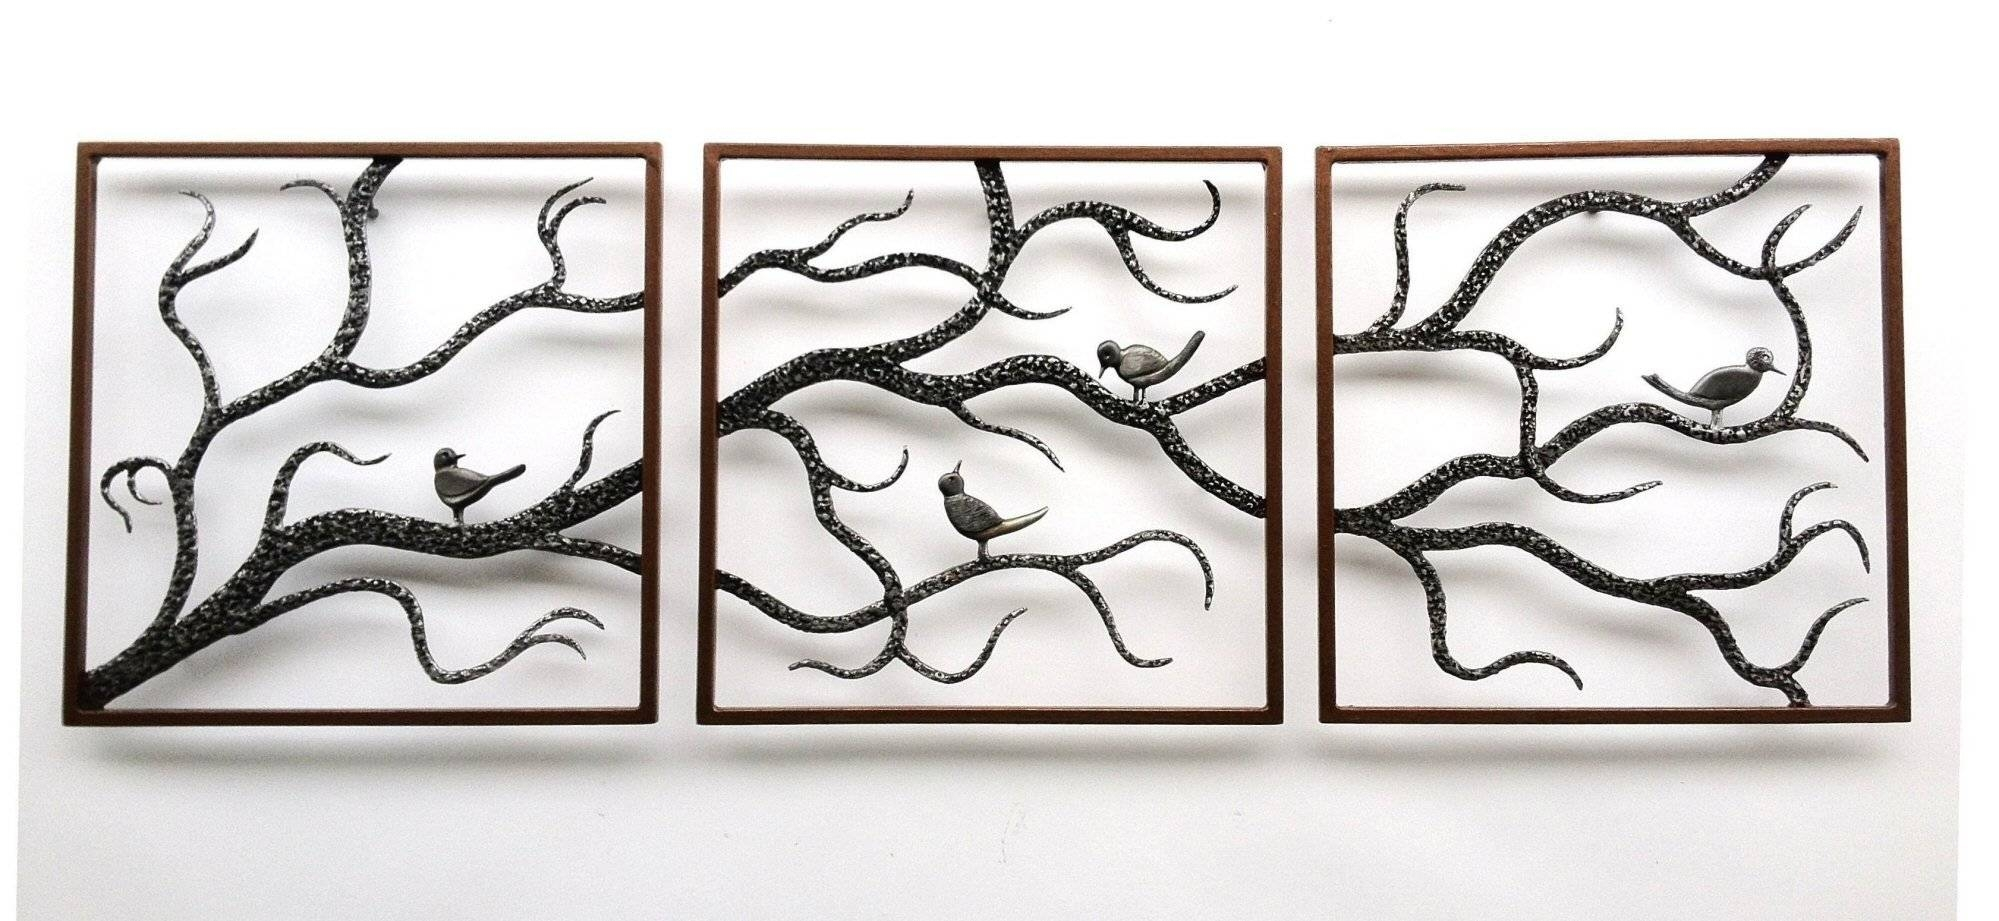 Wall Art Designs: Metal Wall Art Trees Birch Three Framed Cute With Latest Branches Metal Wall Art (View 17 of 20)